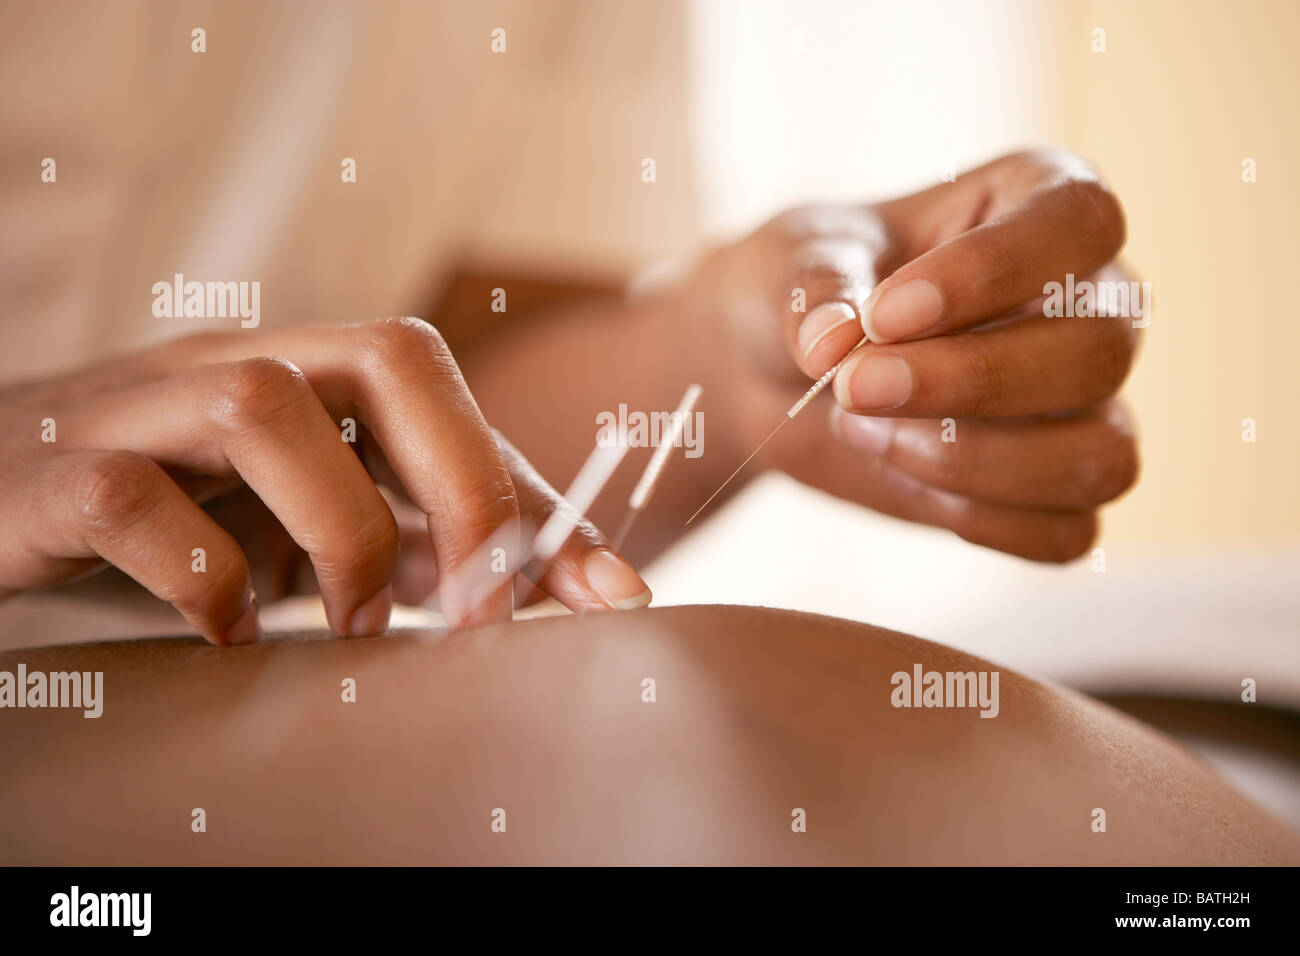 Acupuncture. Acupuncturist inserting a needle into a client's back. - Stock Image